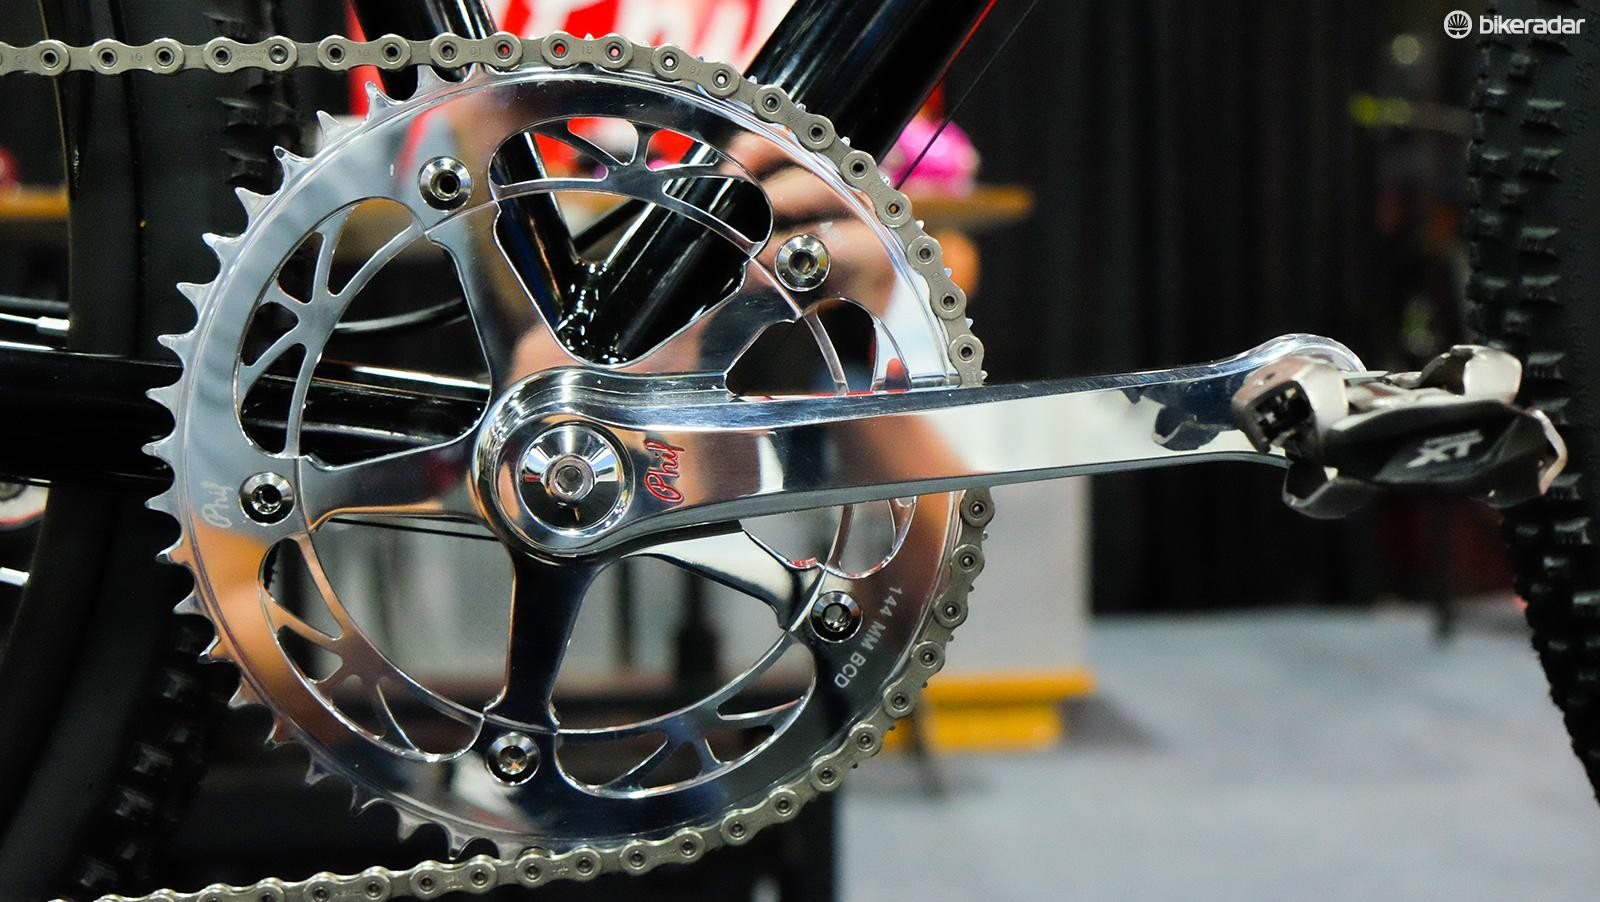 Upfront, a there's a Phil Wood crankset with a custom machined narrow/wide track chainring